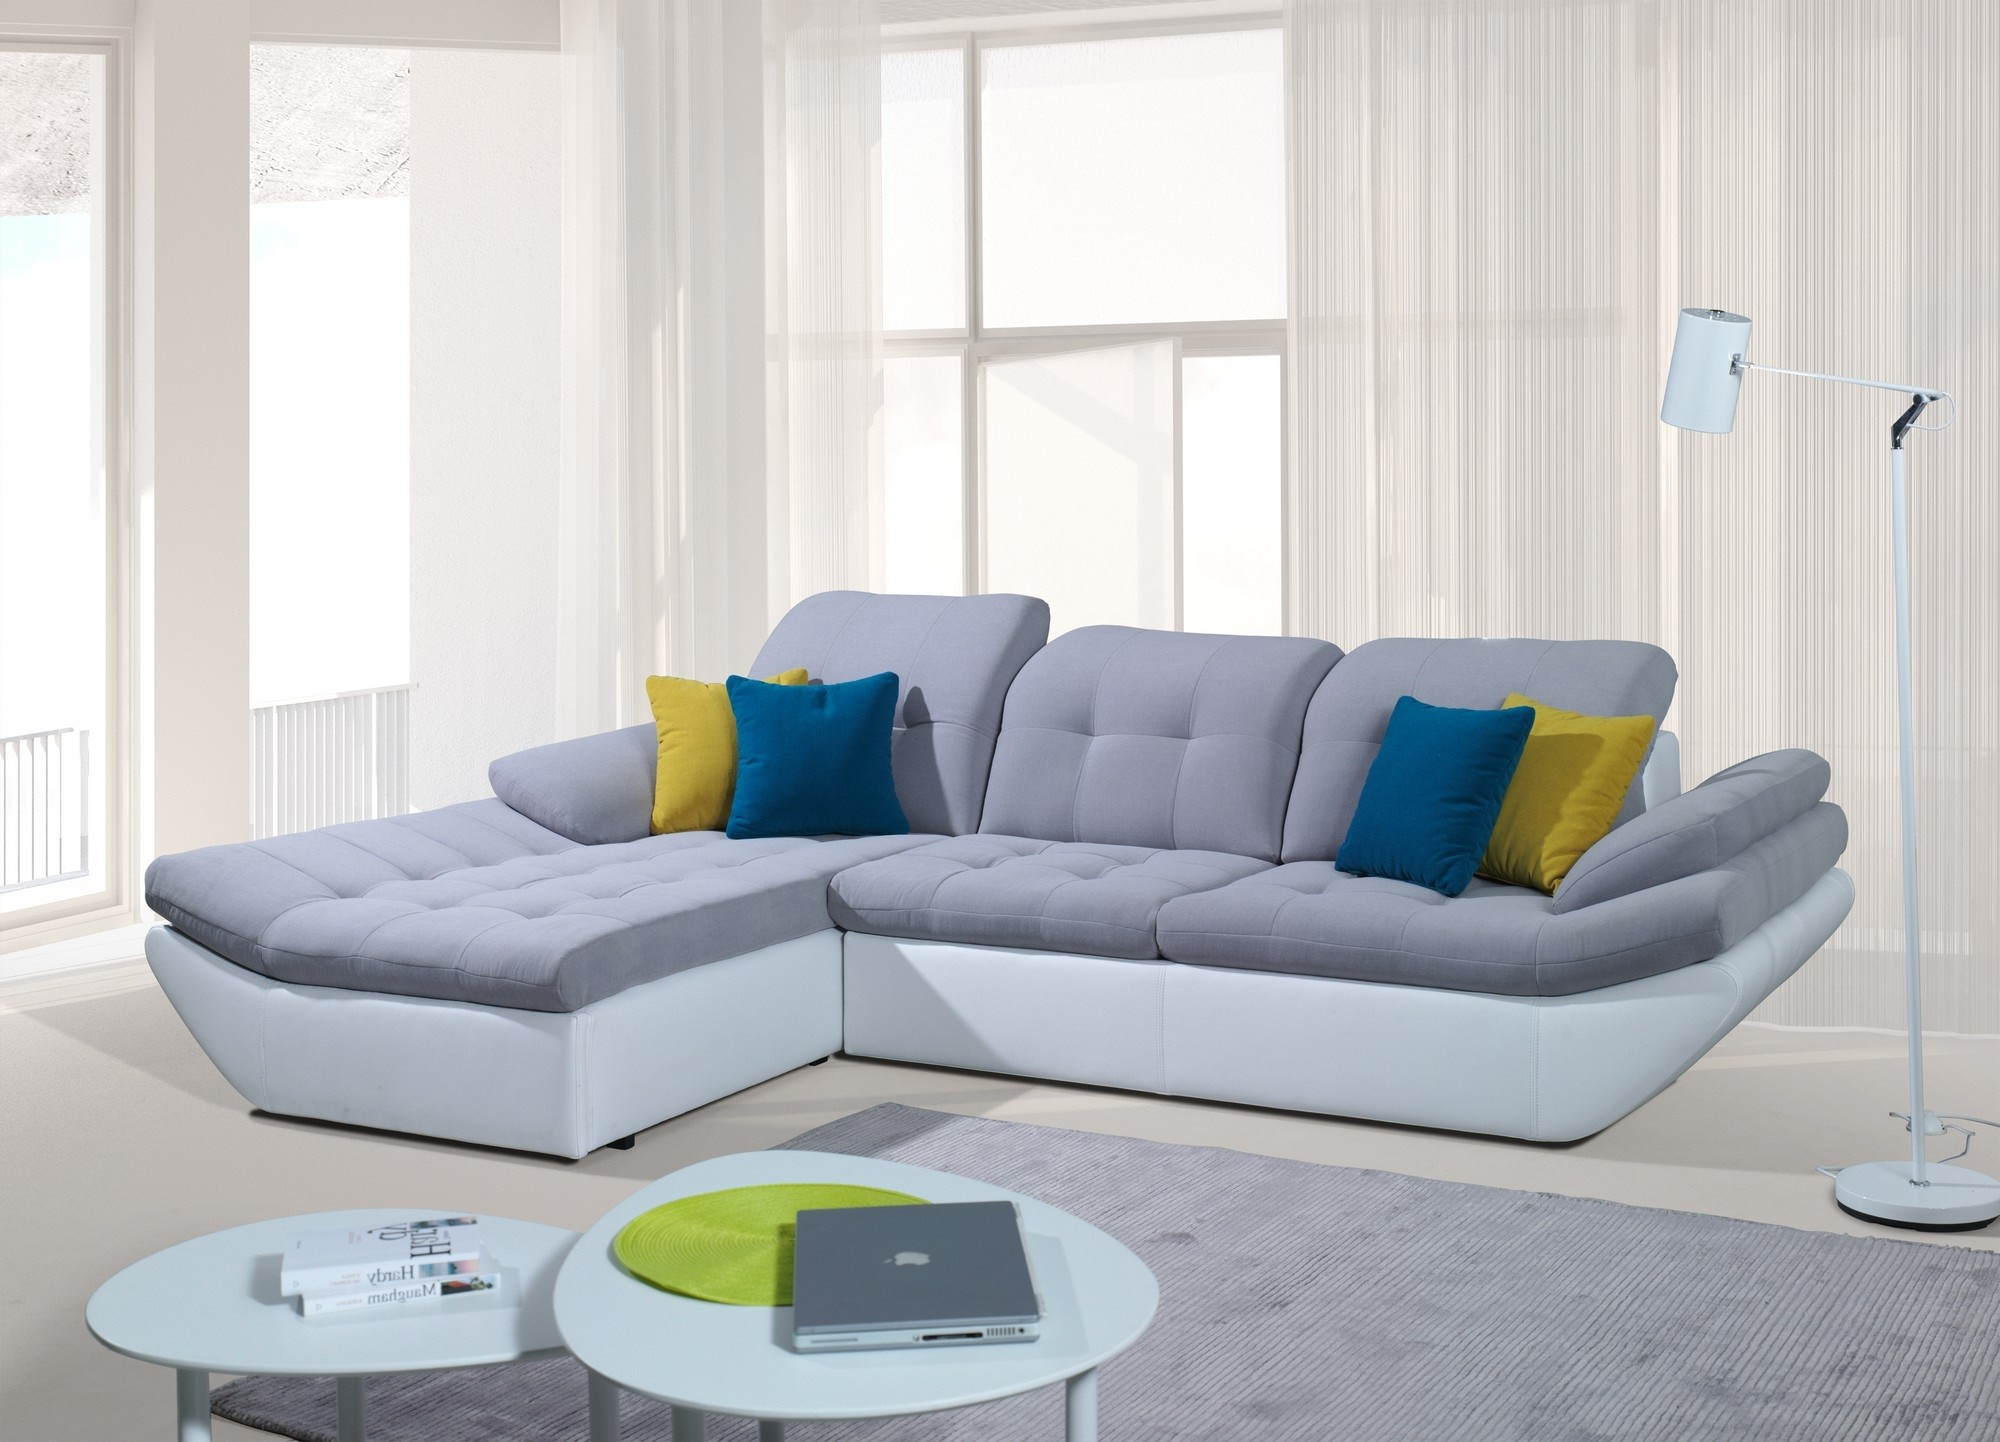 Sectional Sofa Sleepers For Better Sleep Quality And